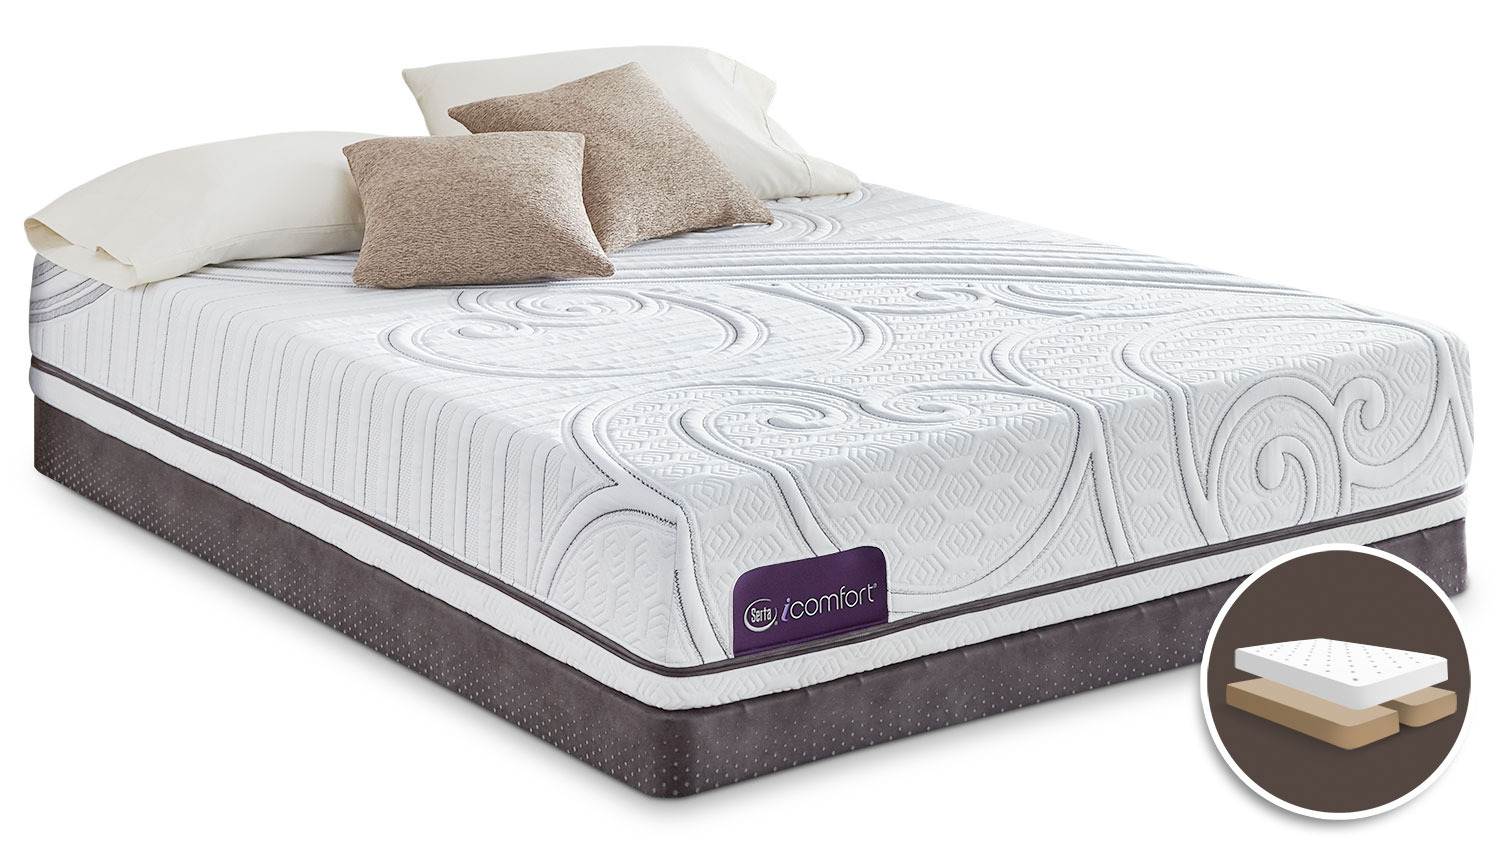 Mattresses and Bedding - Serta iComfort Intellectual 2 Firm Queen Mattress with Split Boxspring